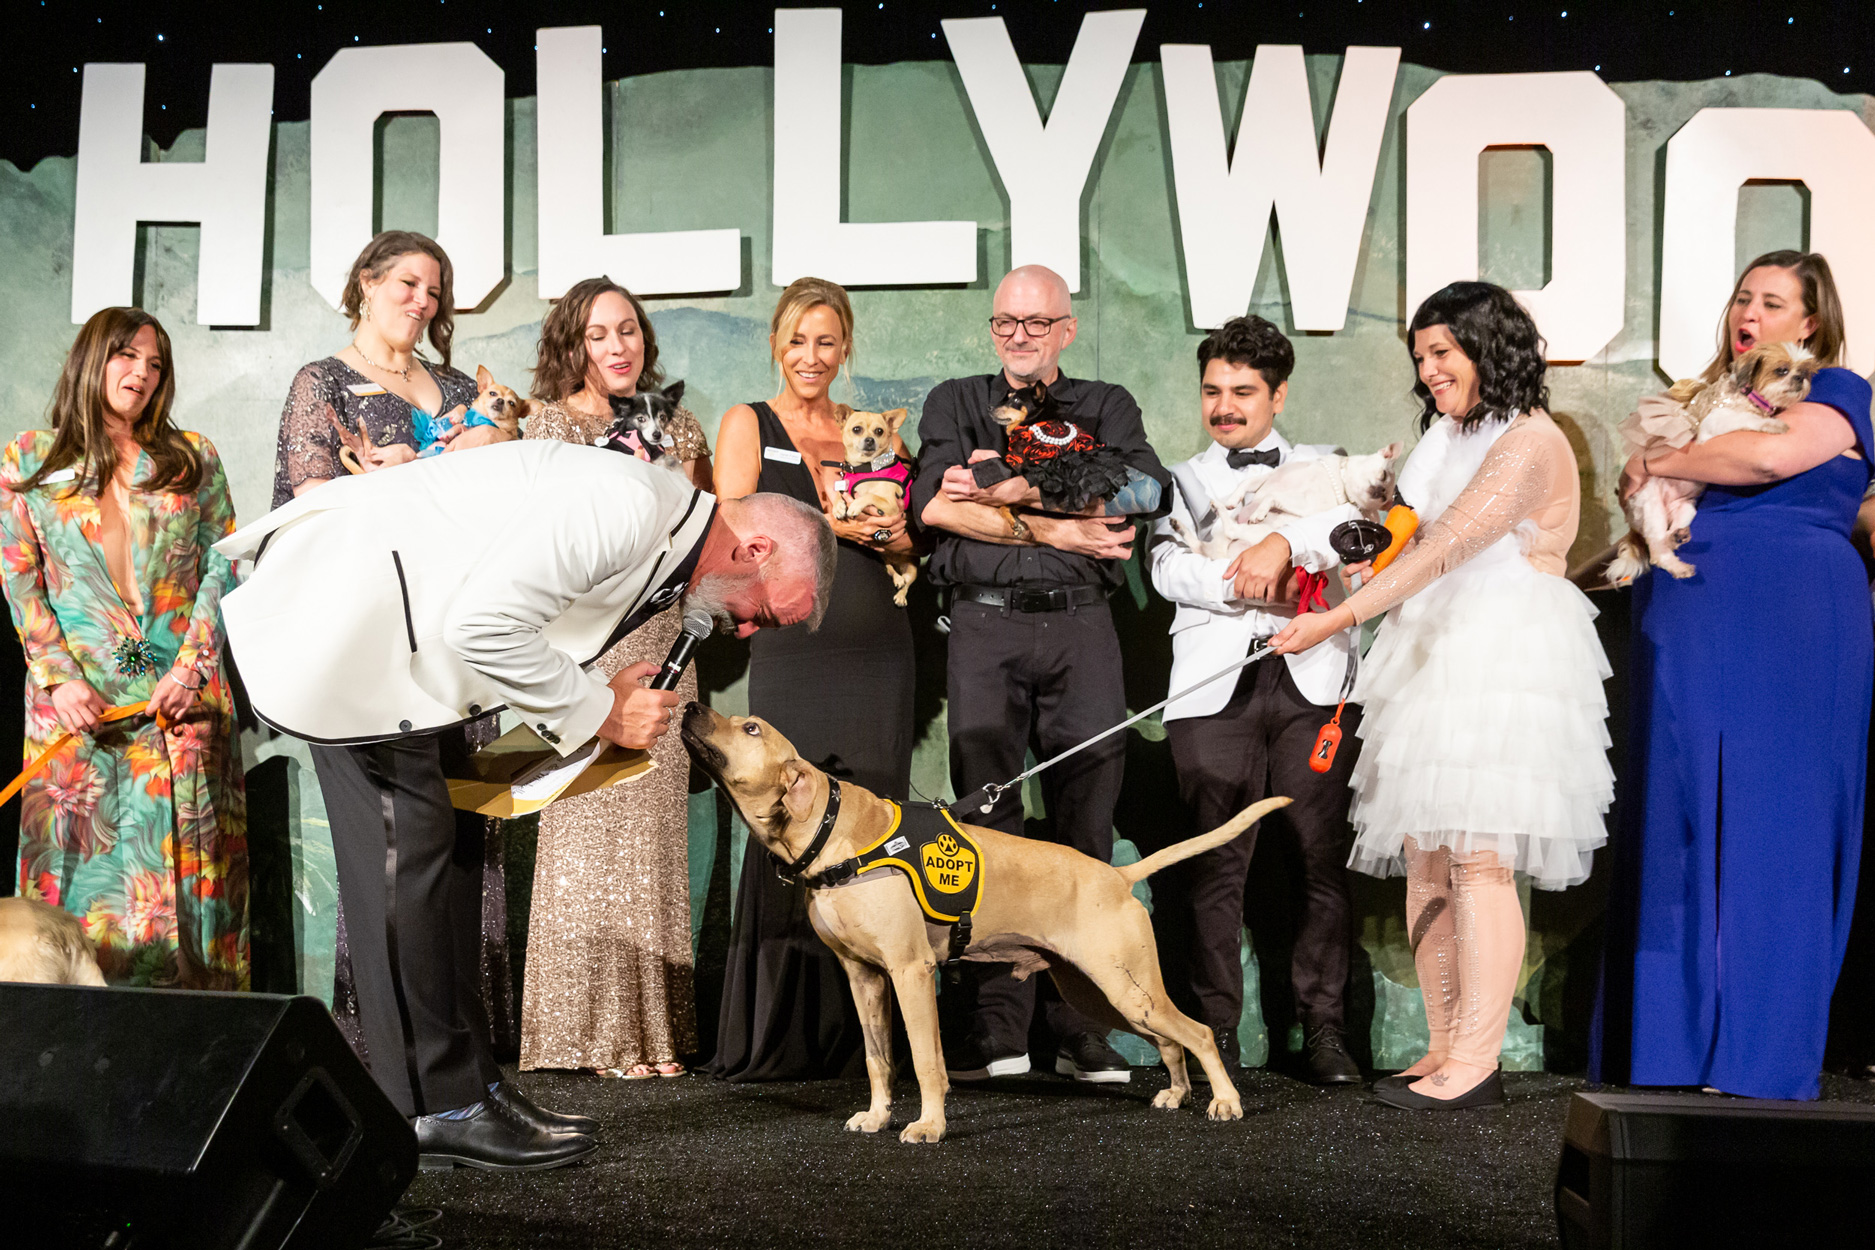 The Golden Age of Hollywoof